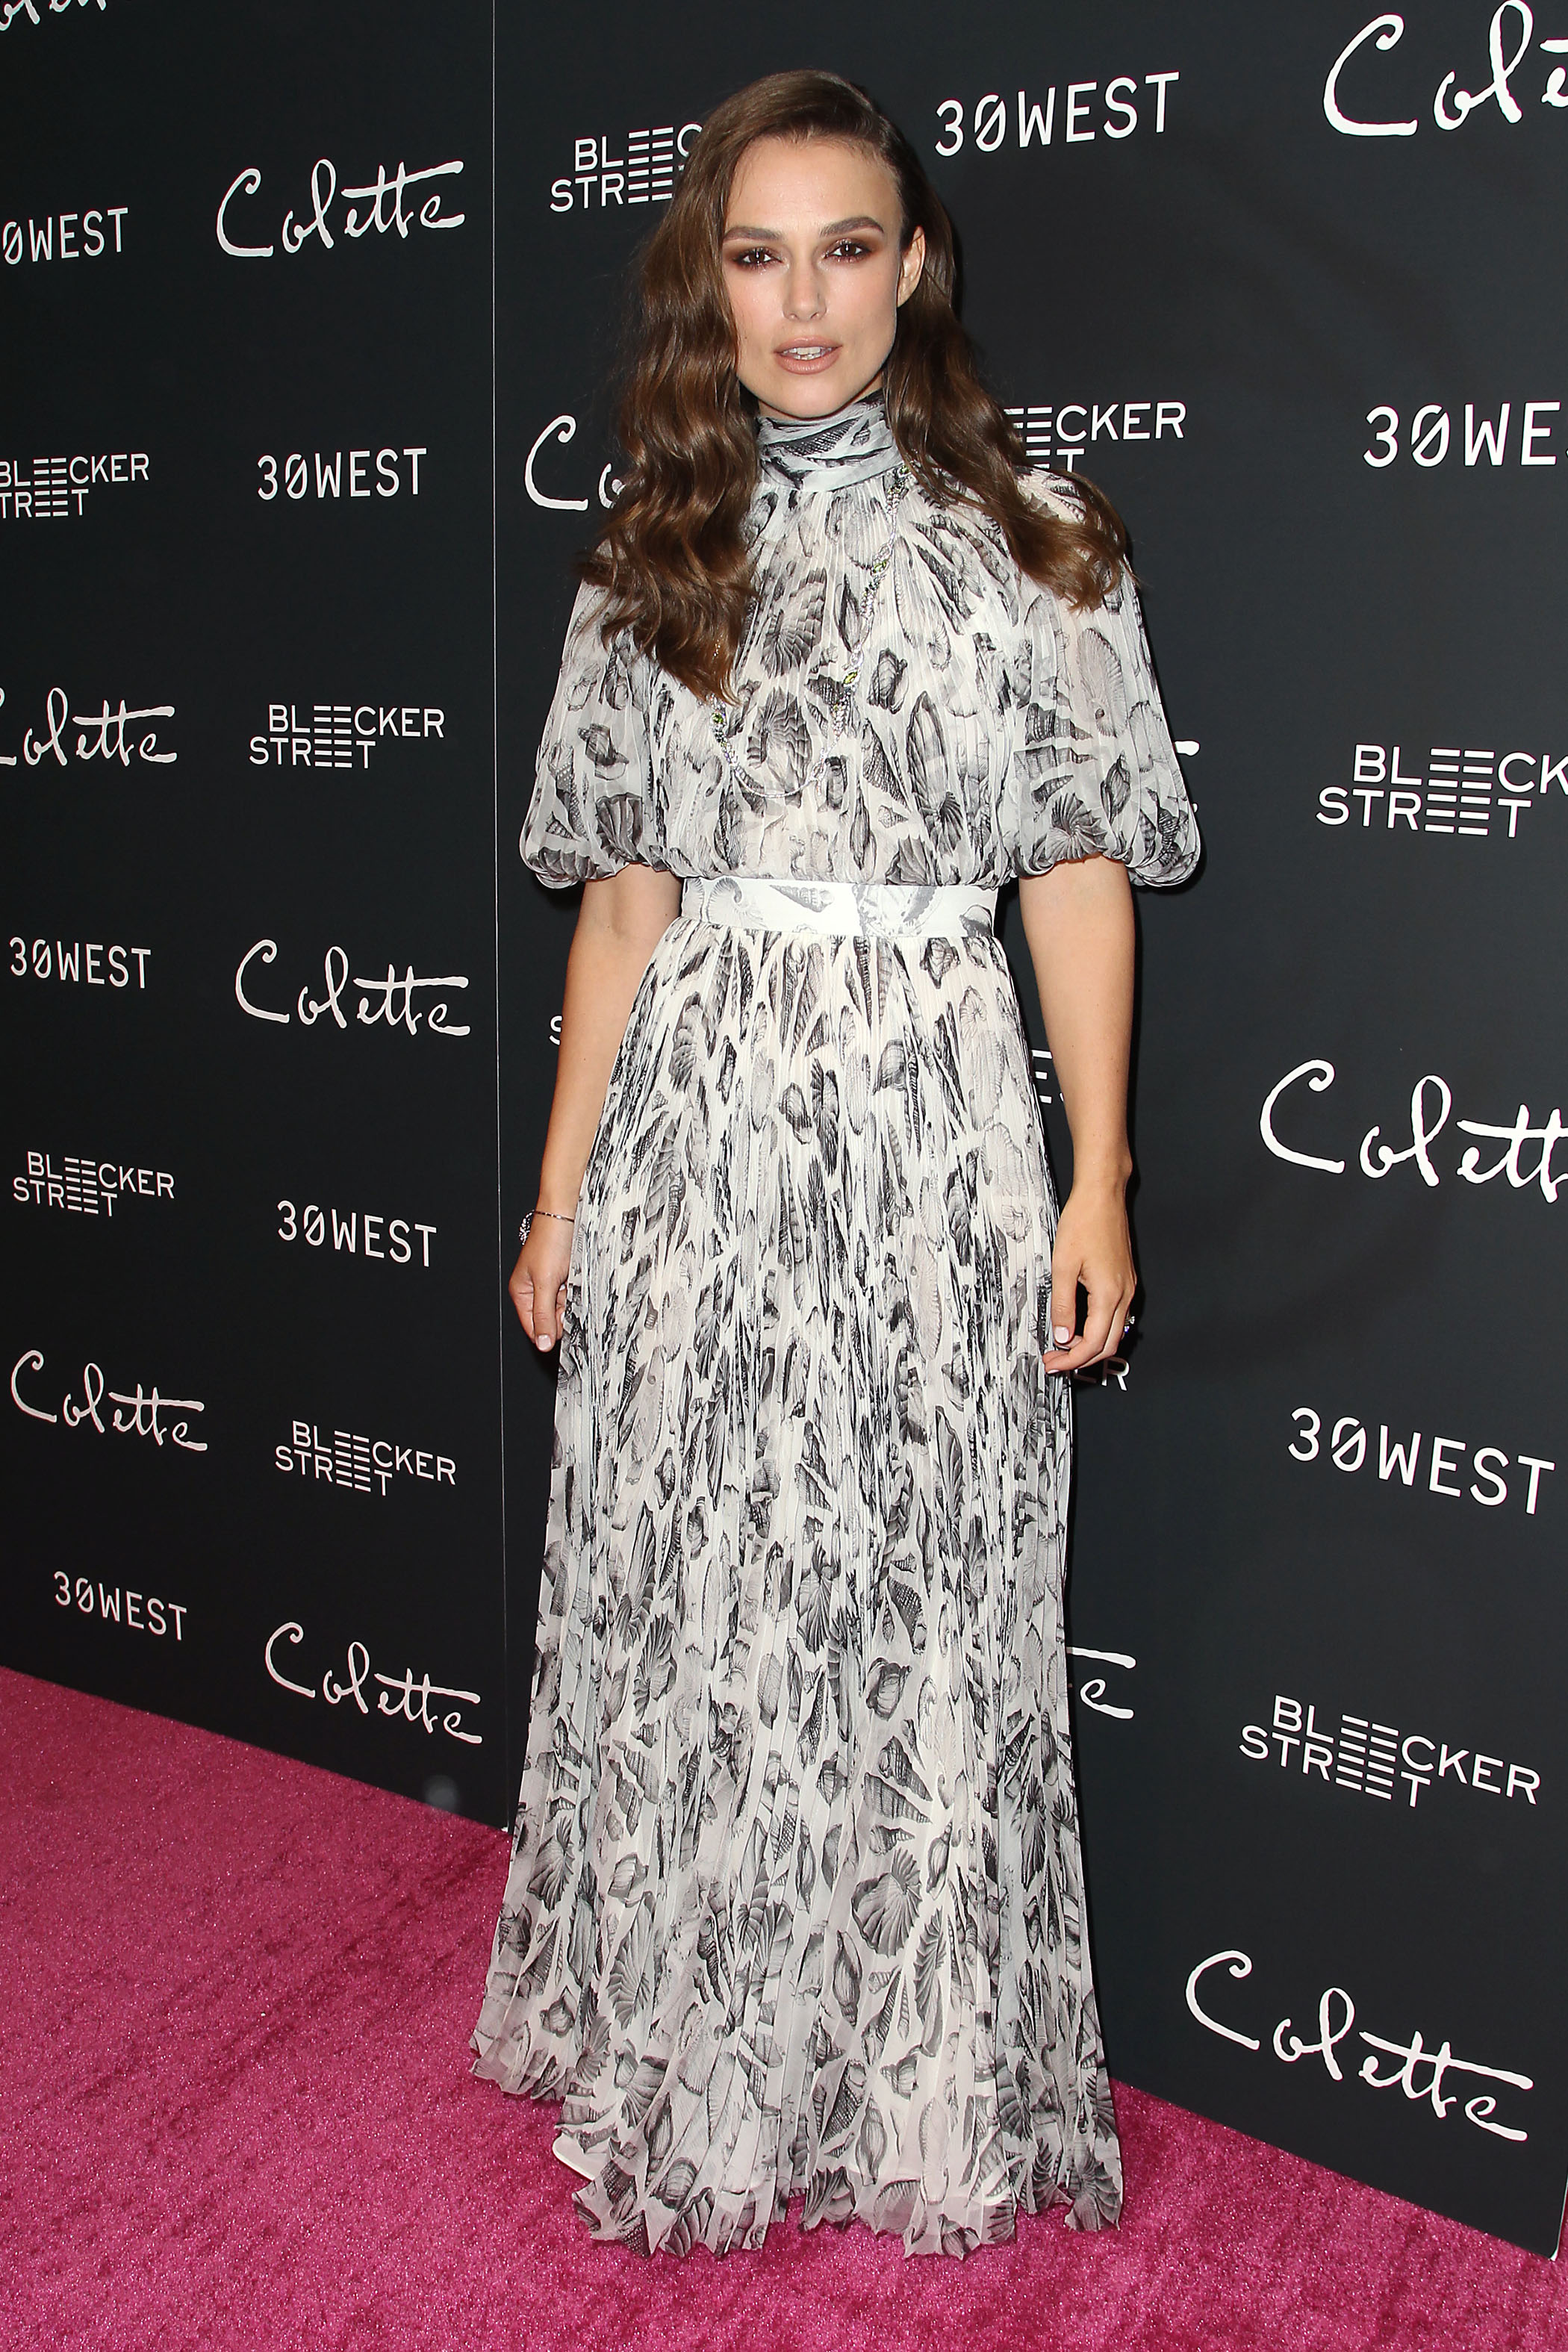 - New York, NY - 9/13/18 - New York Special Screening of COLETTE  -Pictured: Keira Knightley -Photo by: Patrick Lewis/Starpix -Location: Rainbow Room